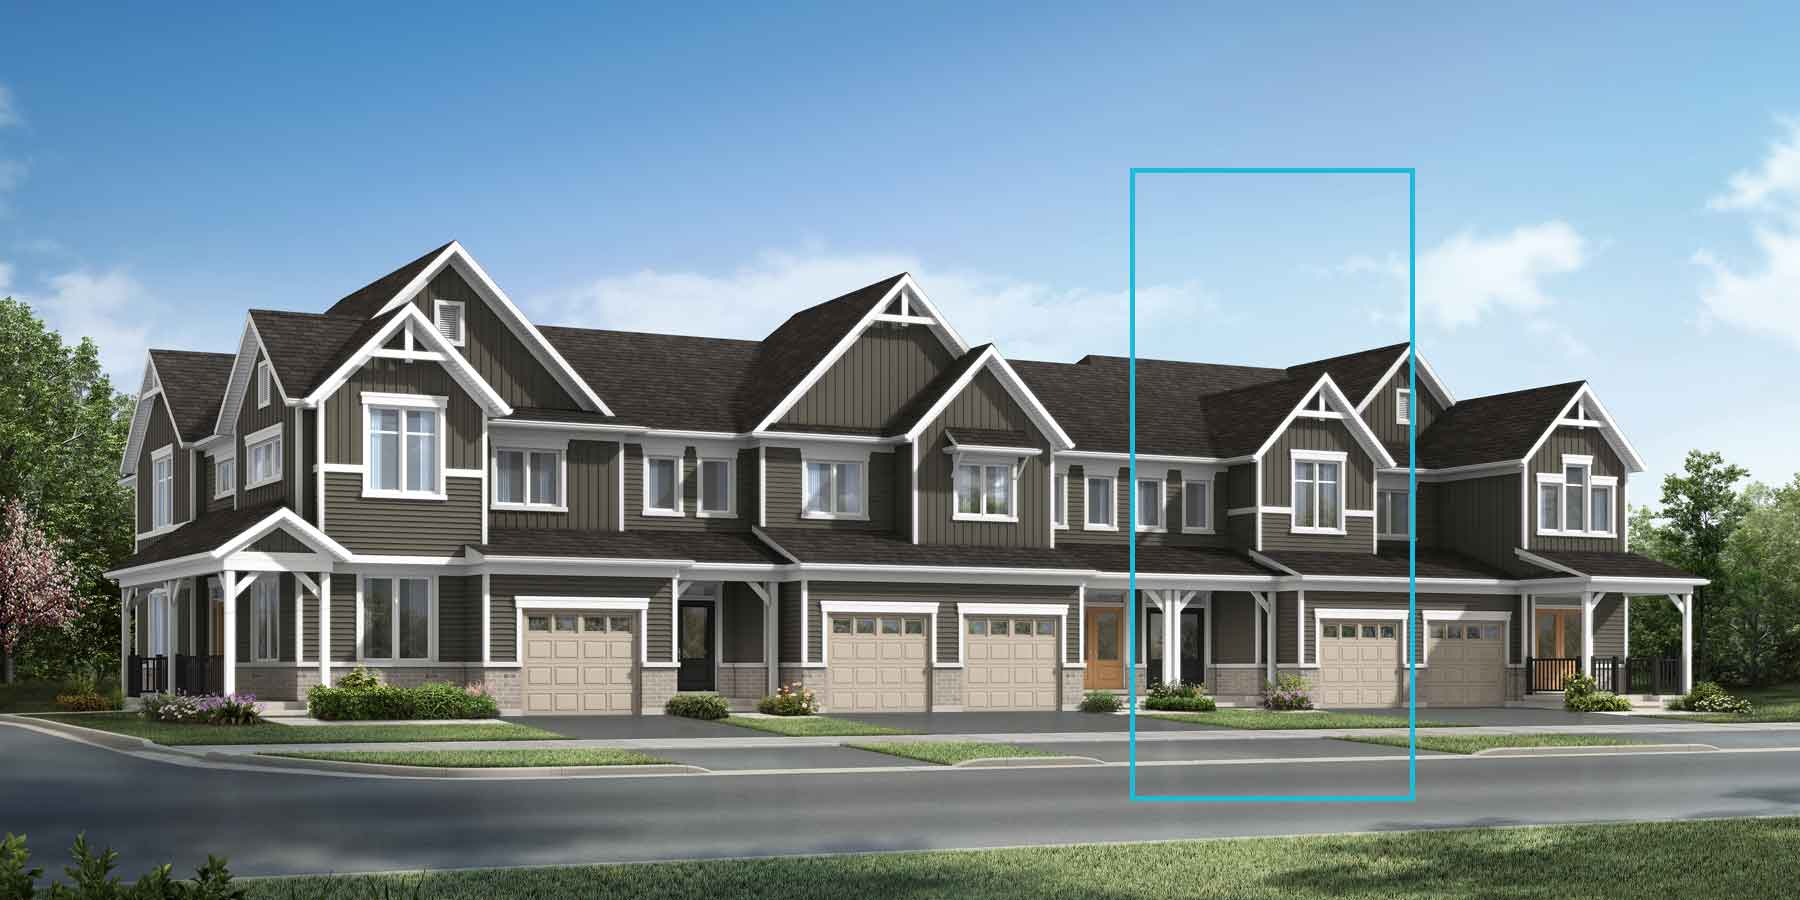 The Princeton Plan TownHomes at Wildflower Crossing in Kitchener Ontario by Mattamy Homes